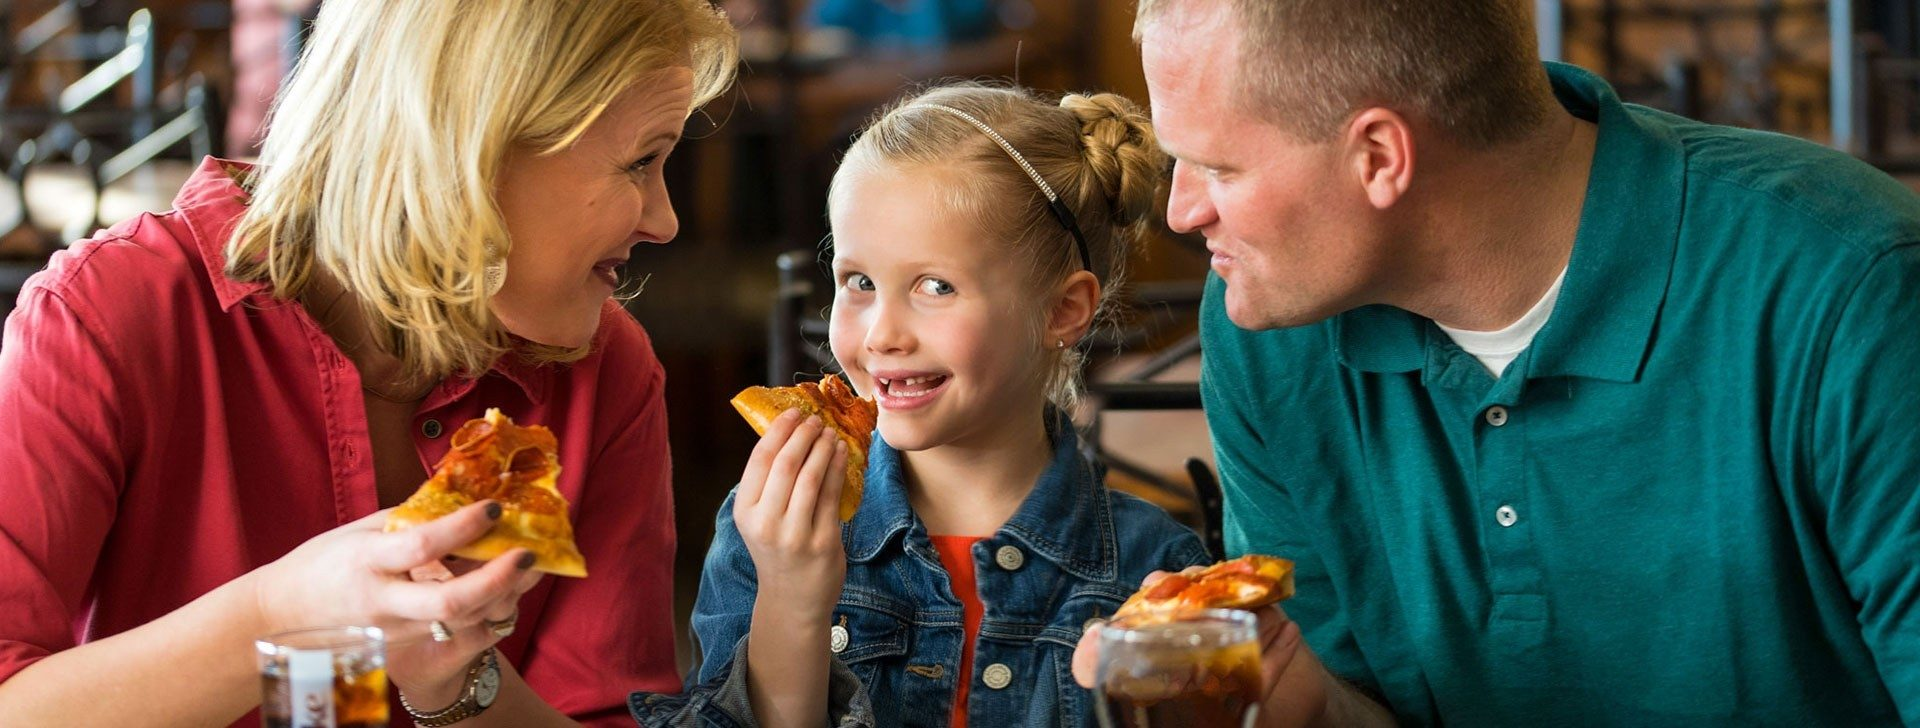 Awesome Kids Eat Free Pizza Ranch Download Free Architecture Designs Intelgarnamadebymaigaardcom